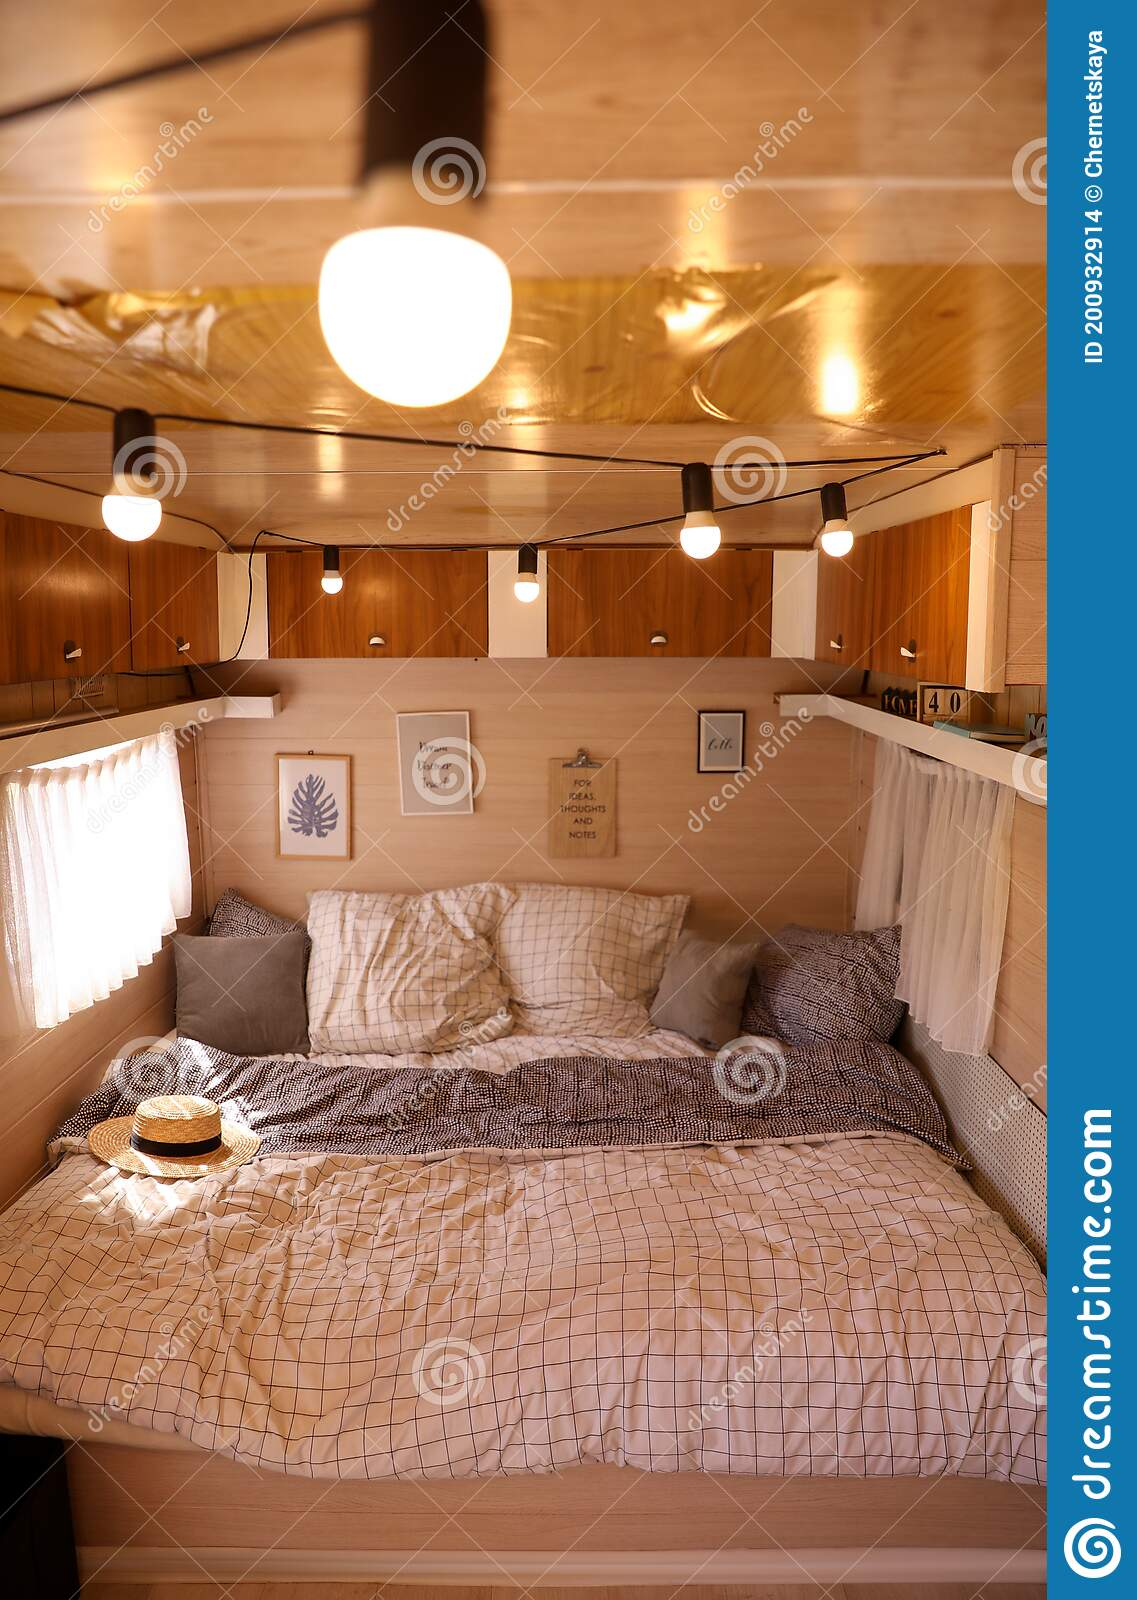 Bed Trailer Wooden Photos Free Royalty Free Stock Photos From Dreamstime